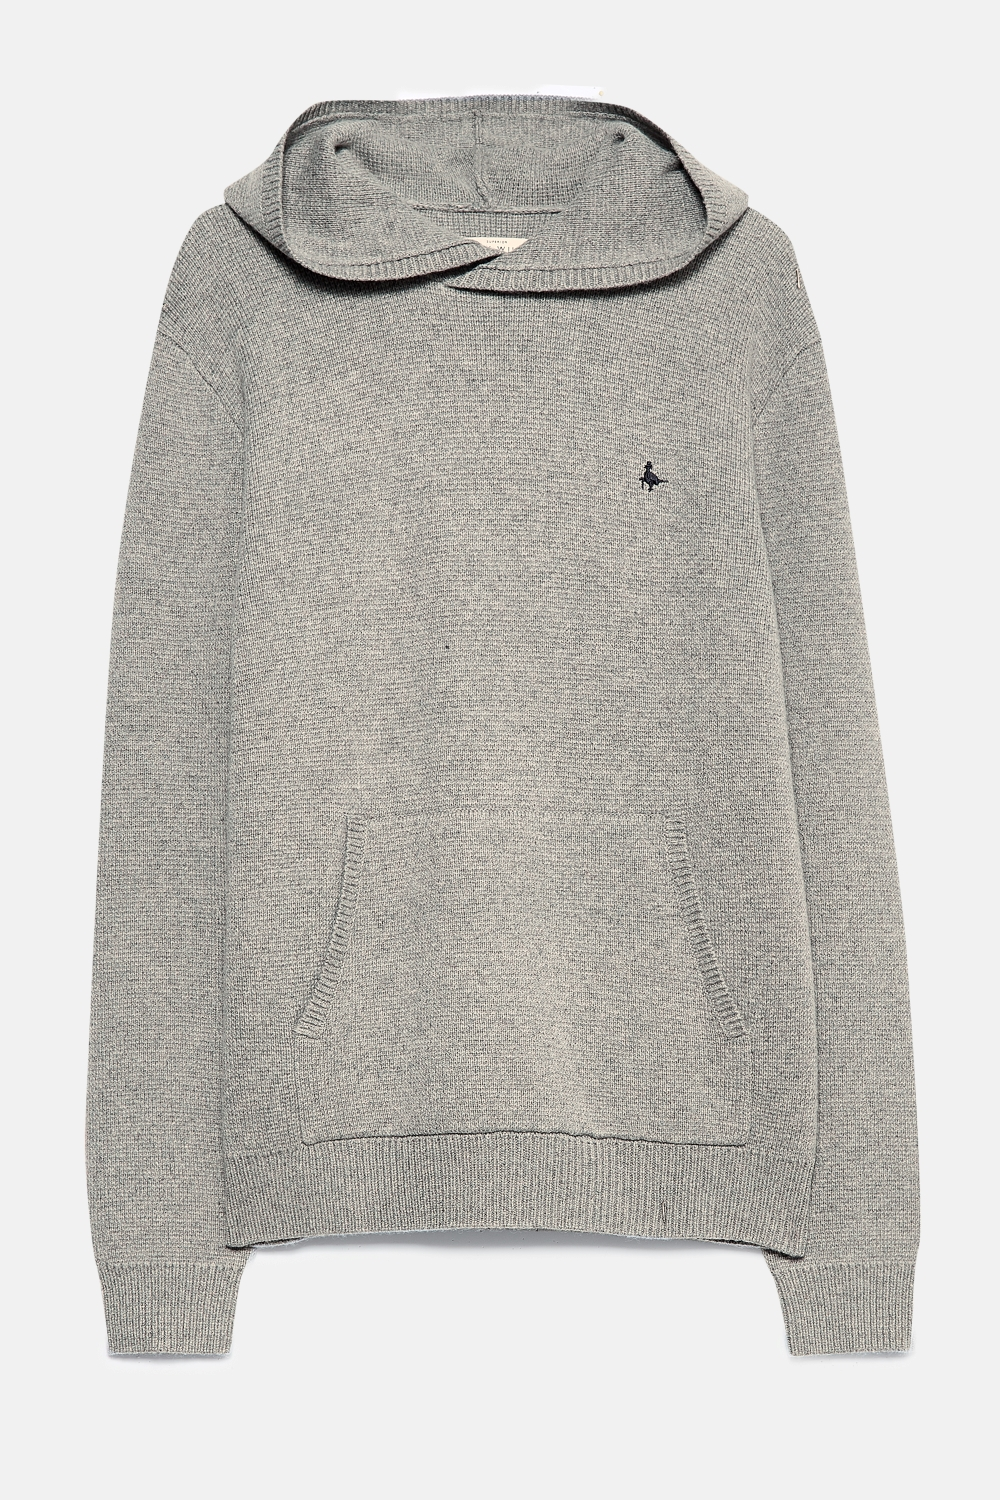 Jack Wills Grey CARTER EXTRA FINE MERINO KNITTED HOODIE